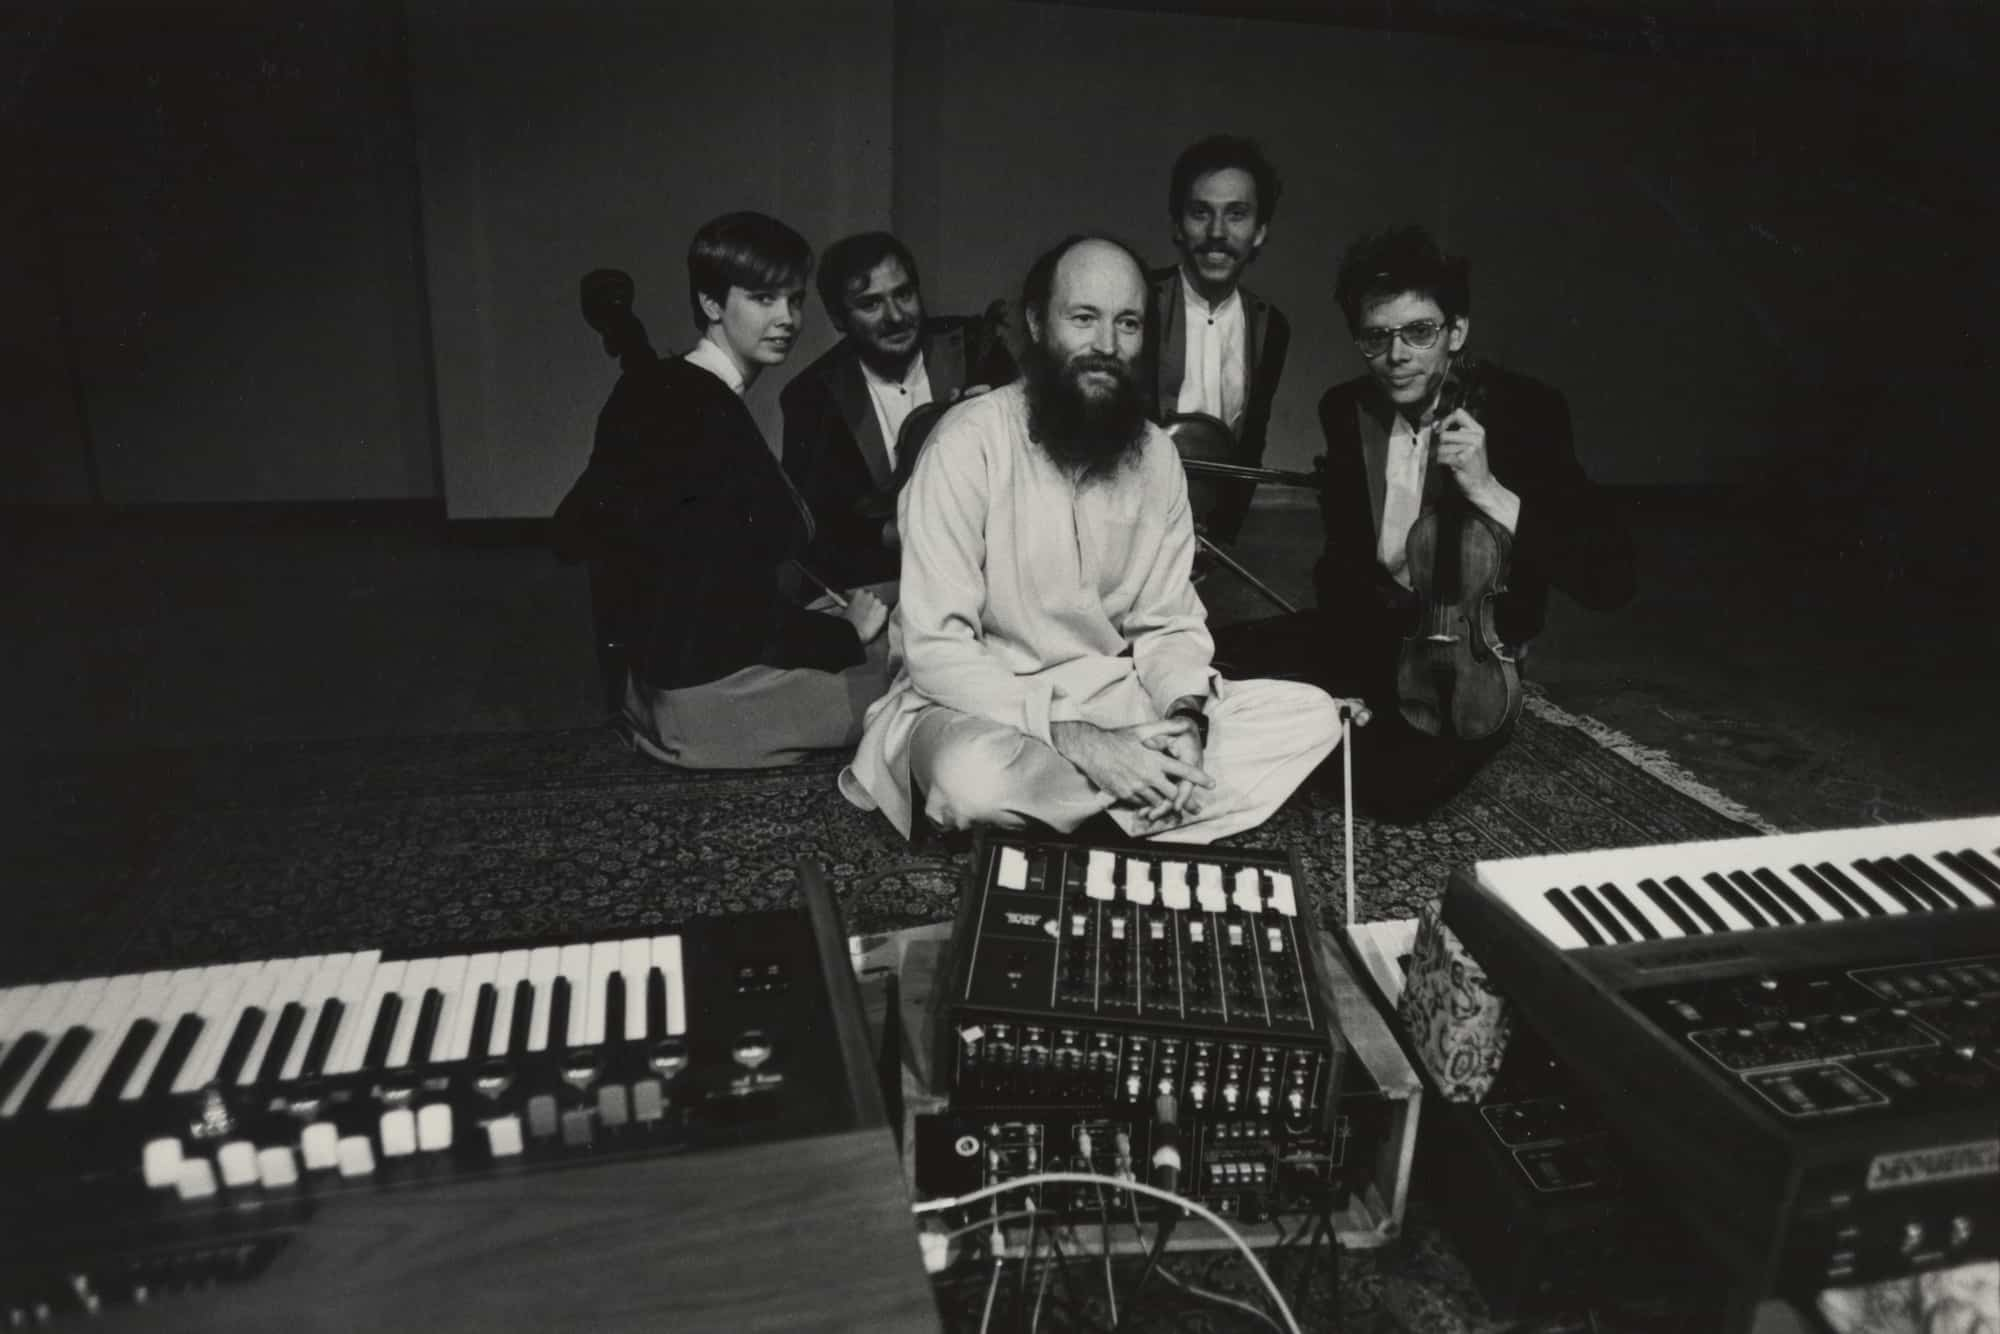 Kronos Quartet with composer Terry Riley in 1983, credit James M. Brown